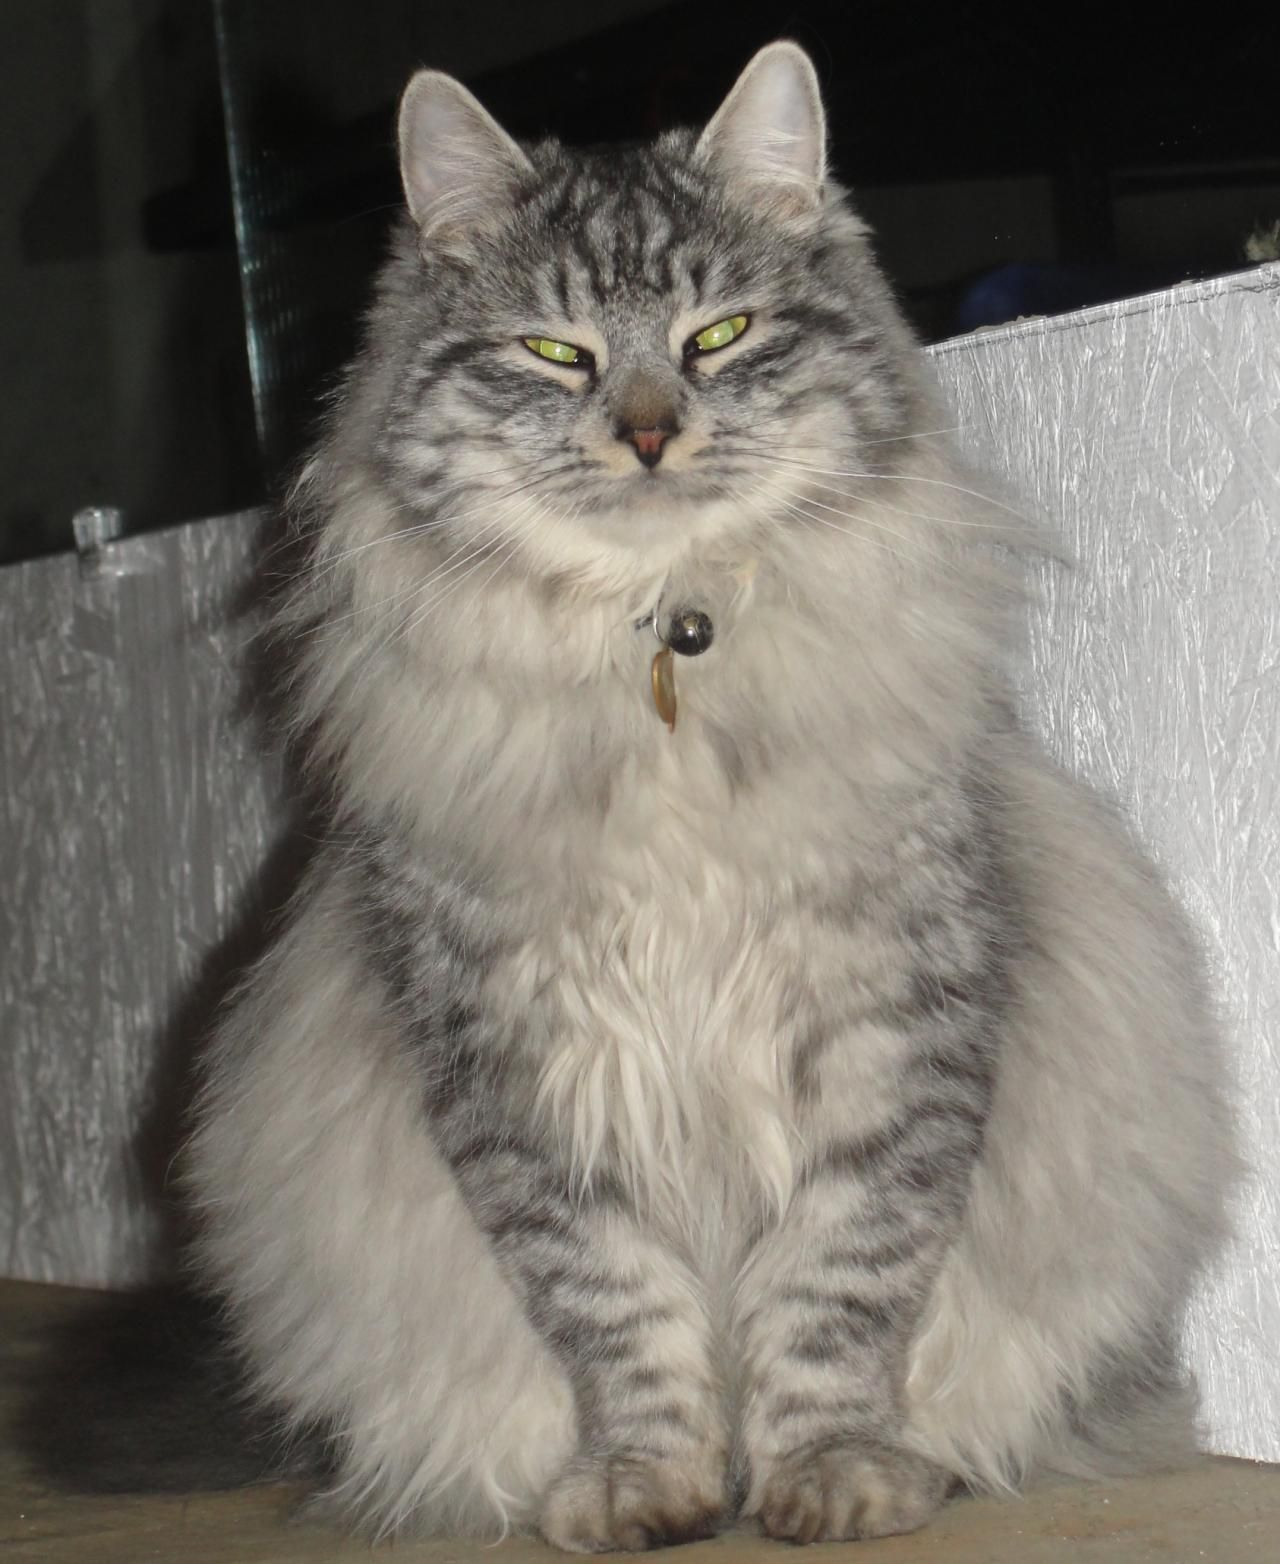 Siberian Cat Is A Landrace Variety Of Domestic Cat Present In Russia For Centuries And More Recently Developed As A Formal Siberian Cat Siberian Kittens Cats